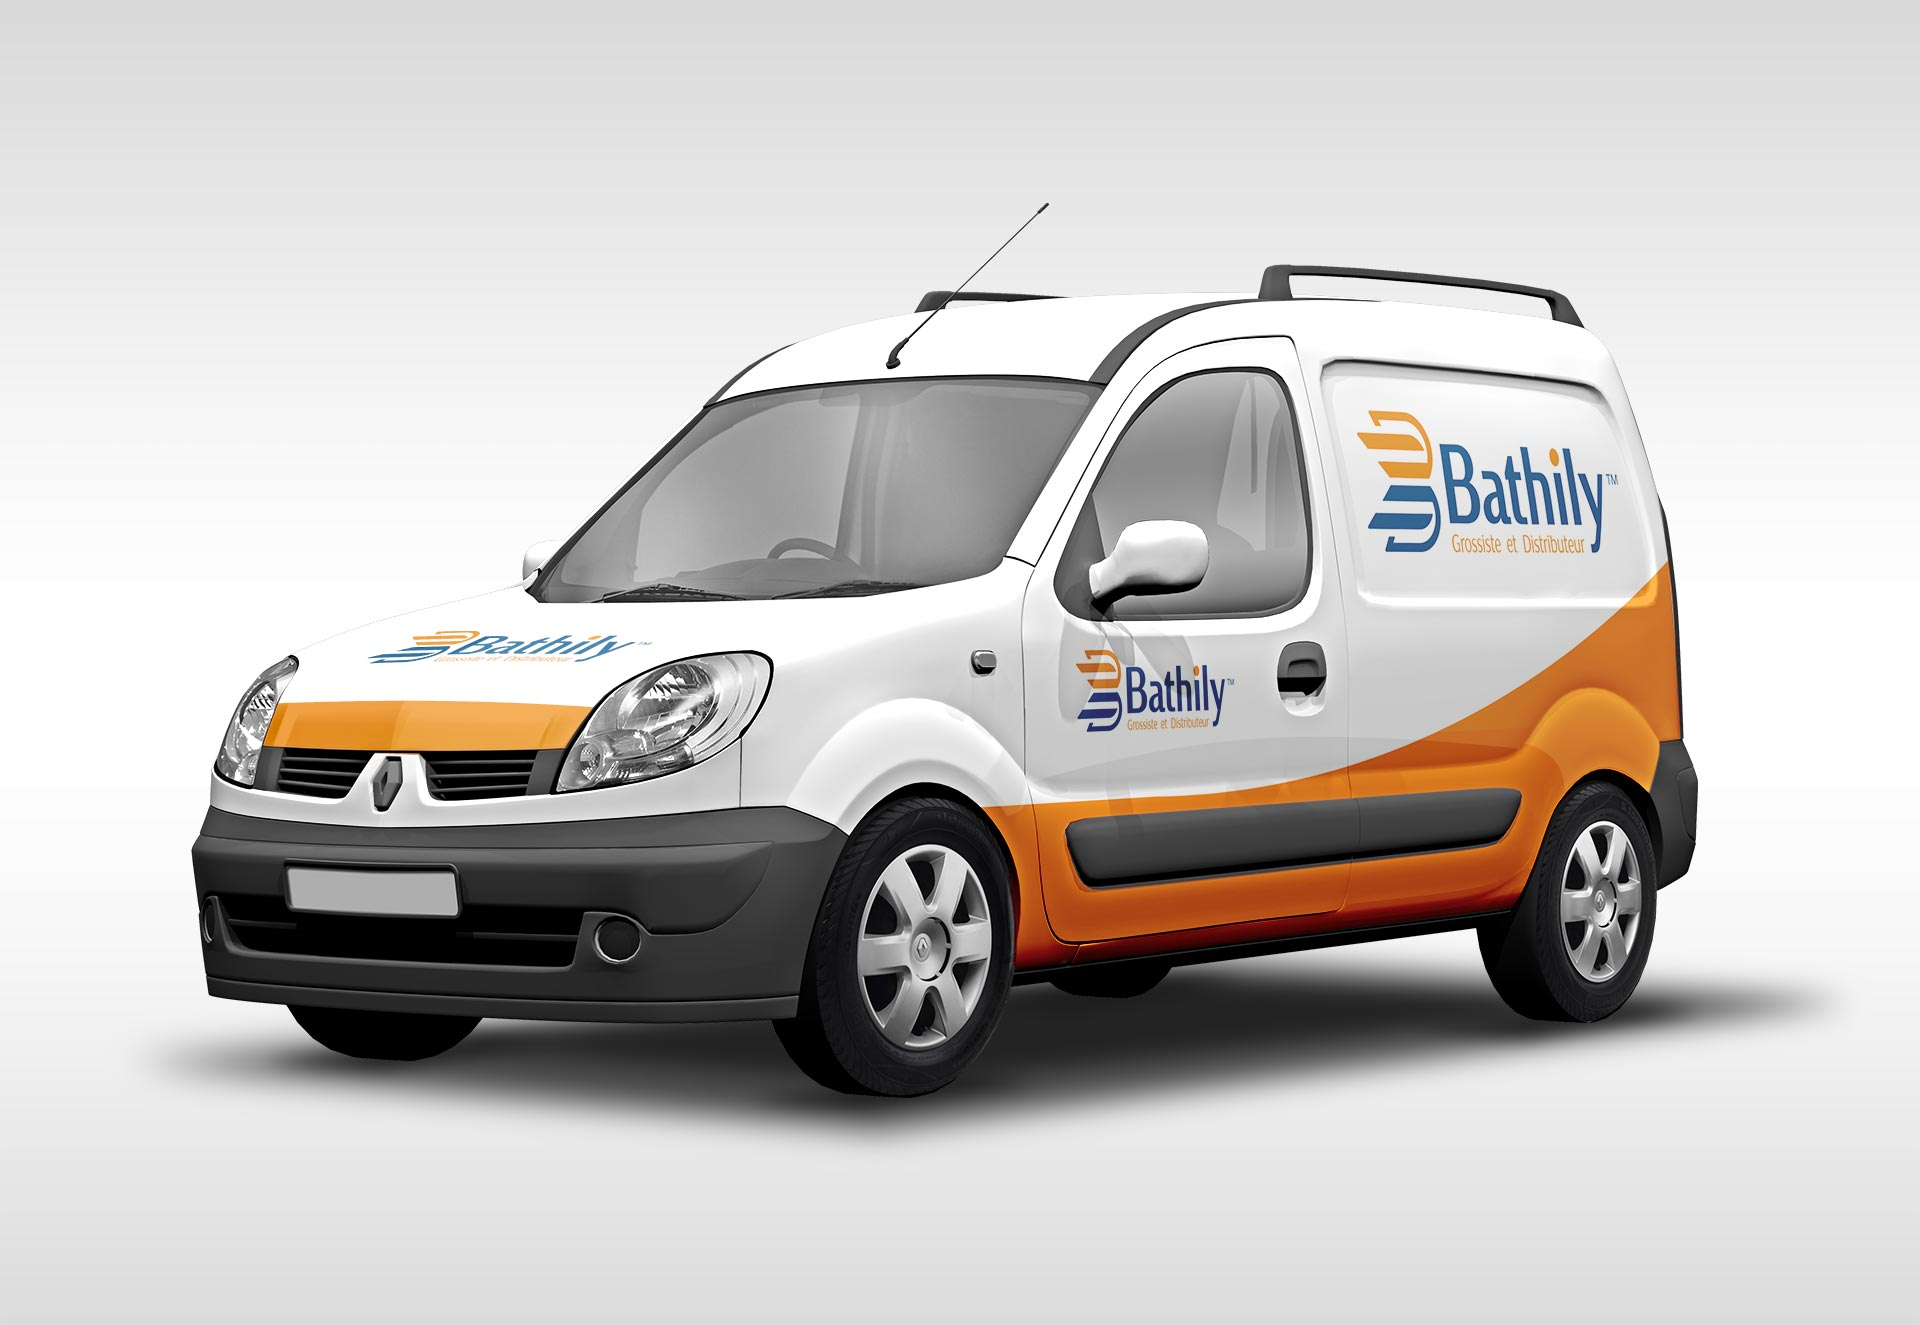 Bathily branding shown on a vehicle